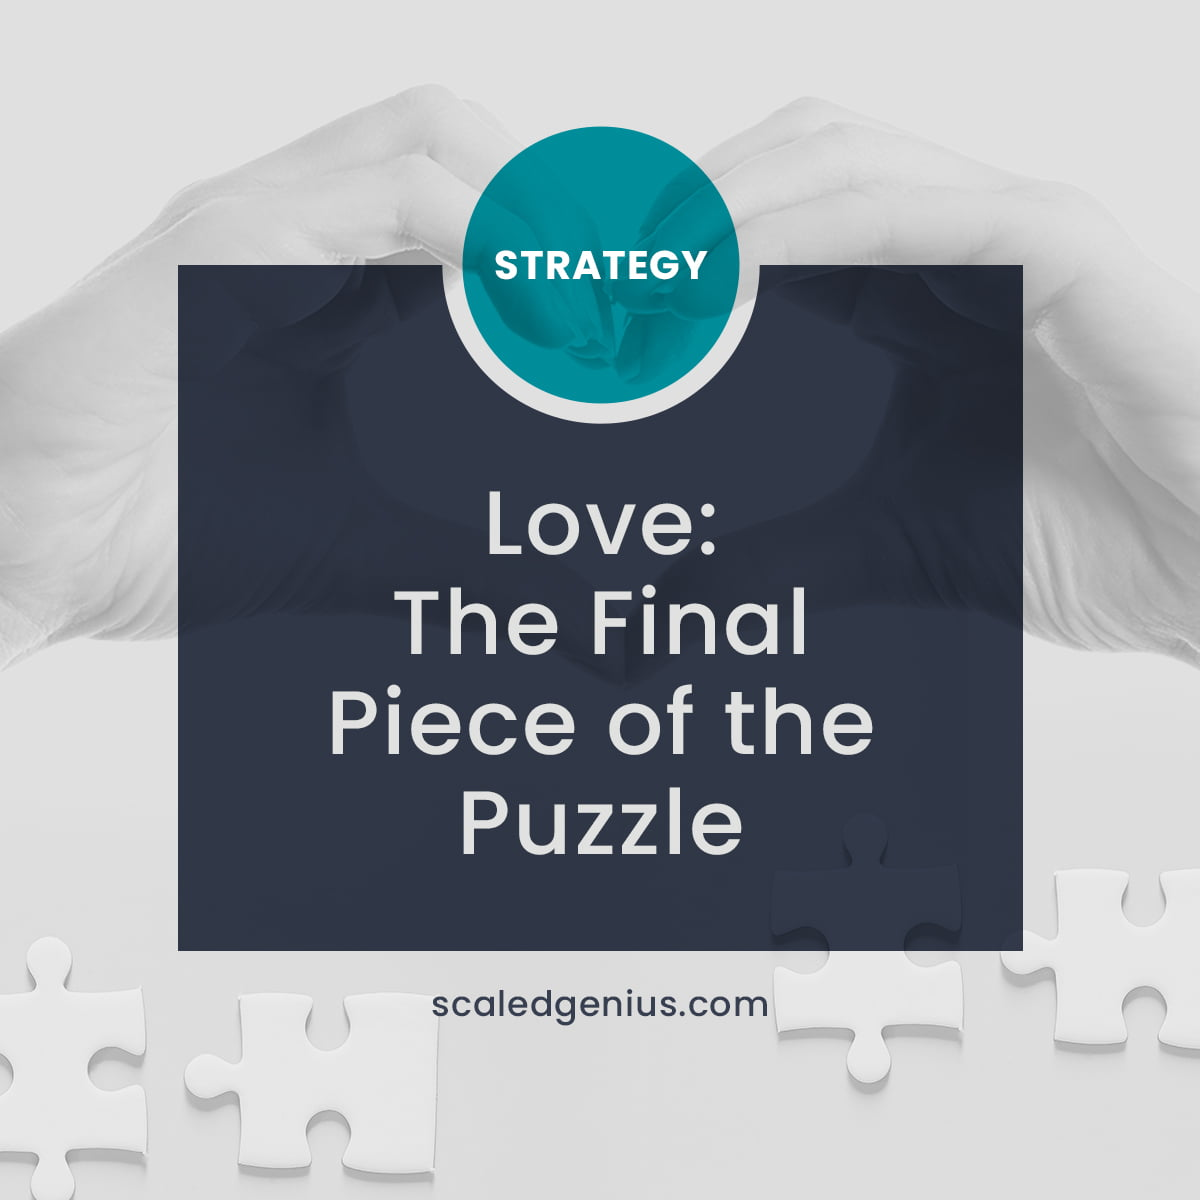 Love: The Final Piece of the Puzzle